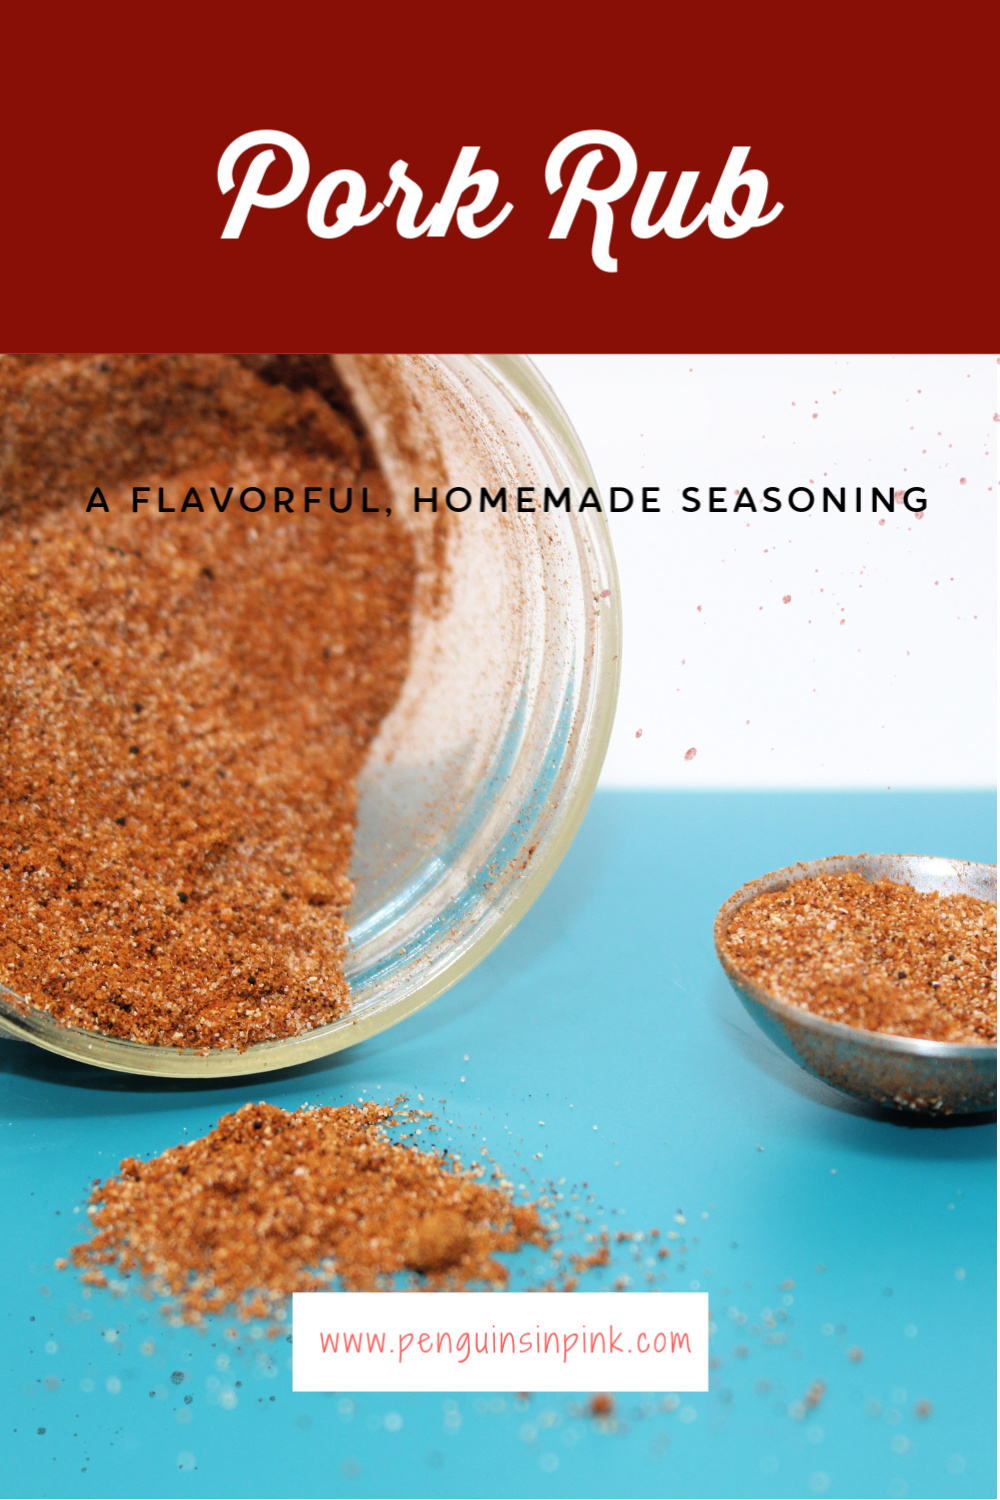 A flavorful, homemade version of pork rub seasoning. It is a mix of cumin, chili, and a few other common household spices.